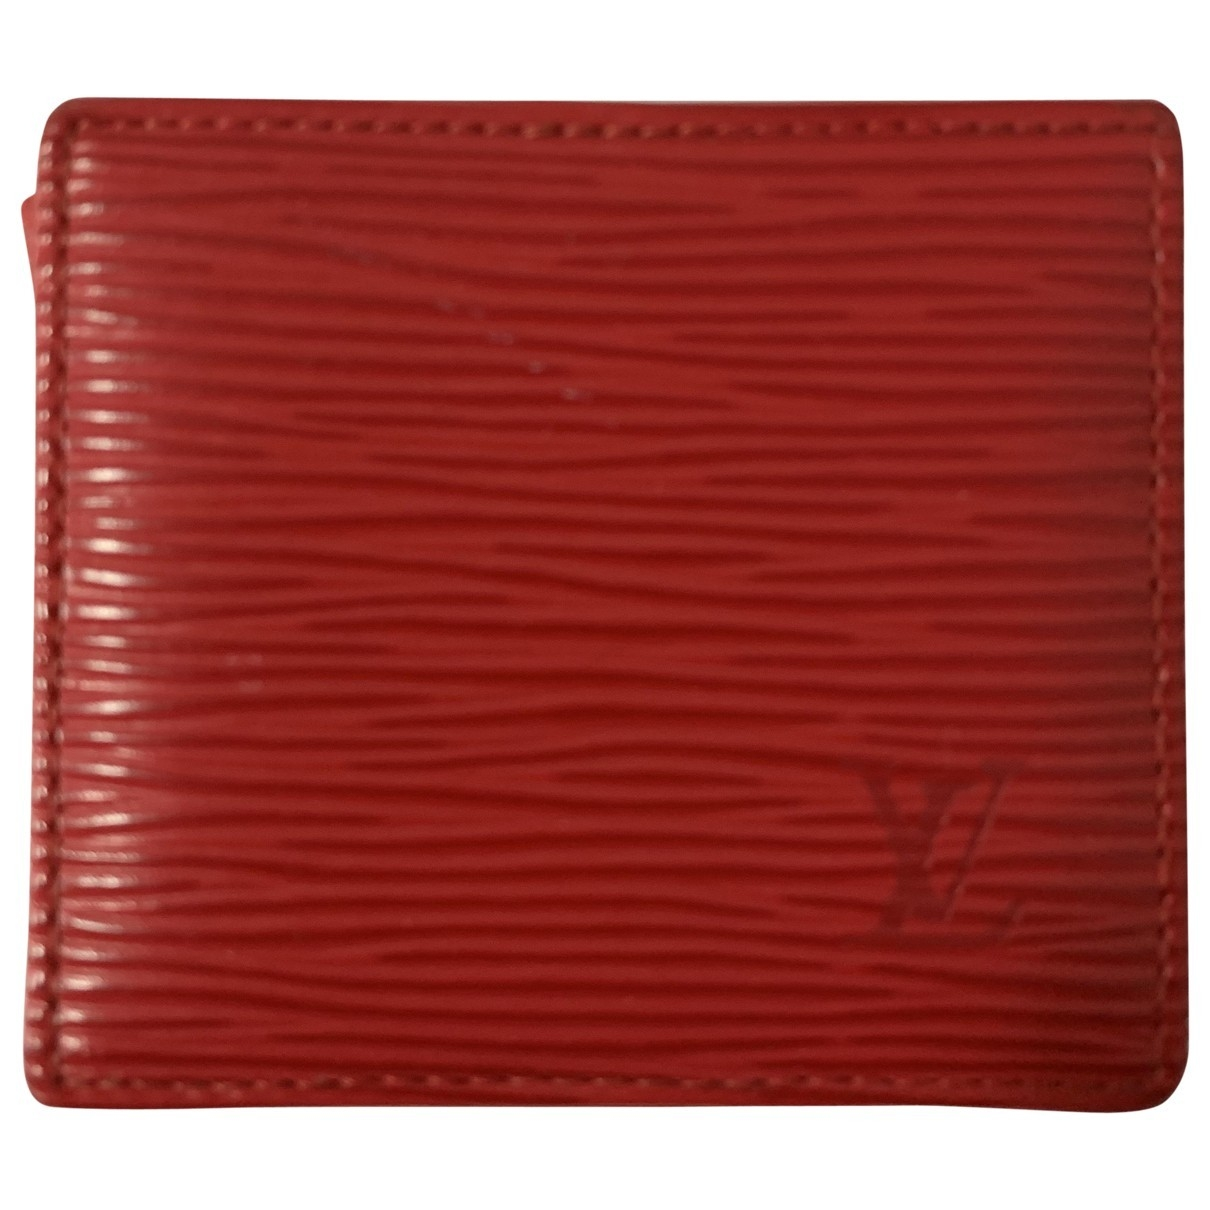 Louis Vuitton \N Red Leather Purses, wallet & cases for Women \N